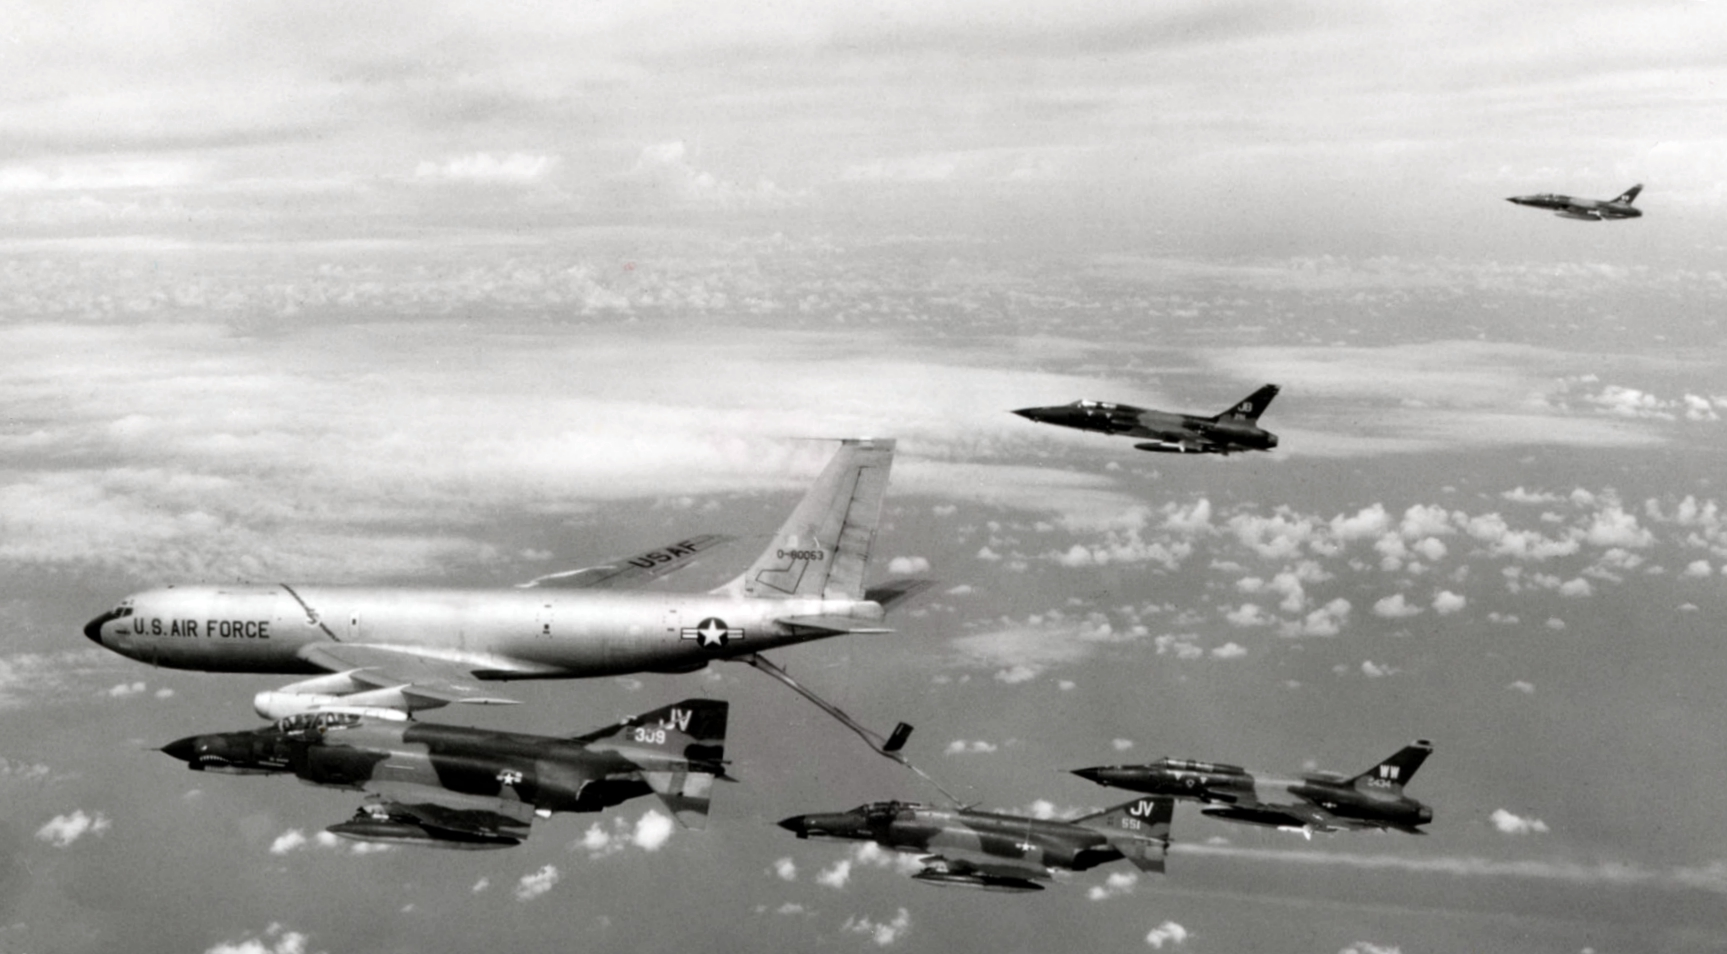 air force in the vietnam war From 1950-1954, the usaf loaned transport and attack aircraft to the french air force in indochina the usaf also sent about 200 aircraft mechanics to help maintain them.